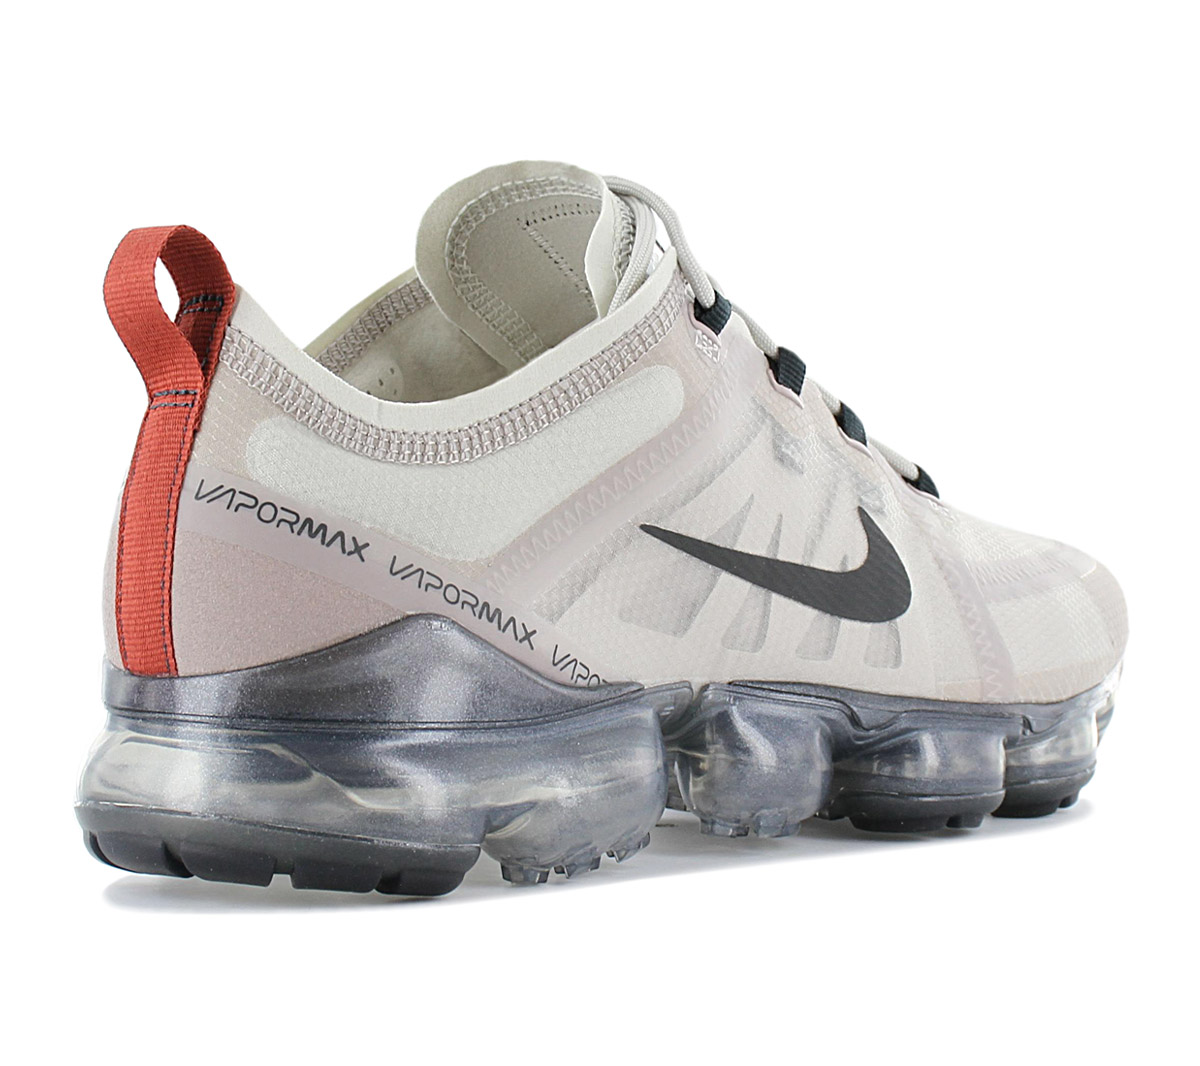 Details about Nike Air Vapormax 2019 Mens Sneaker Shoes AR6631 200 Beige Sneakers NEW show original title